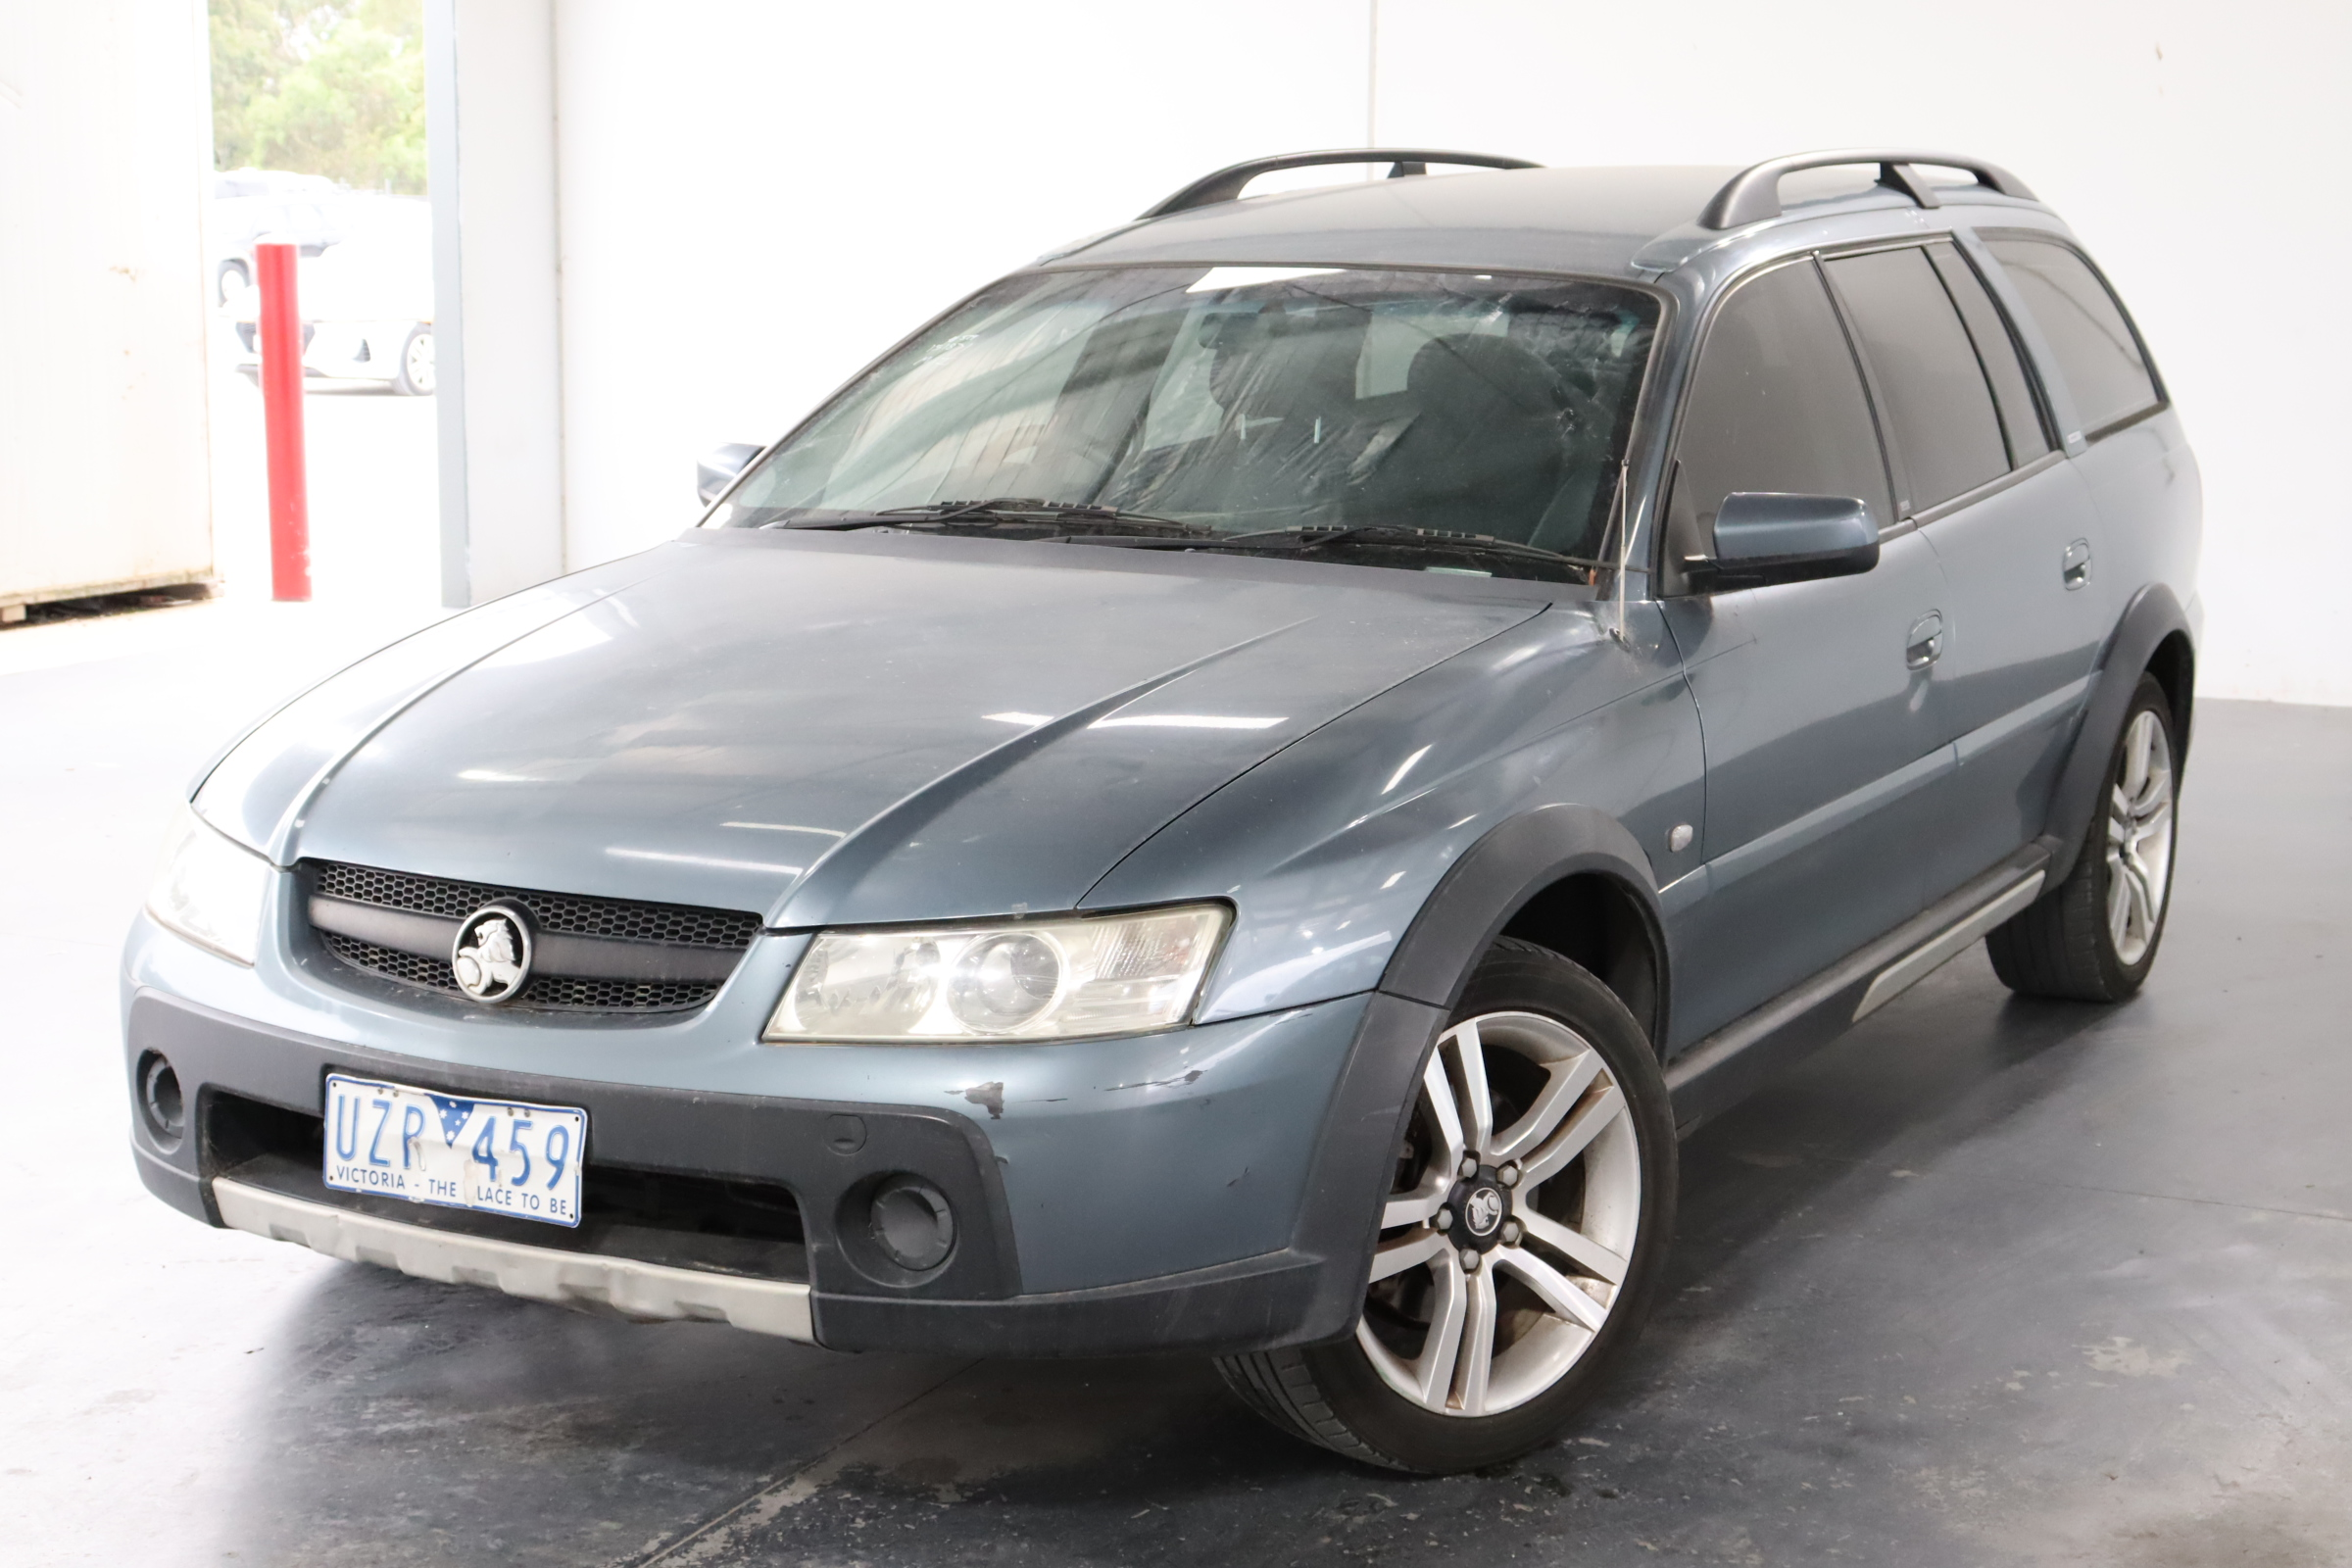 2006 Holden Adventra CX6 VZ Automatic Wagon